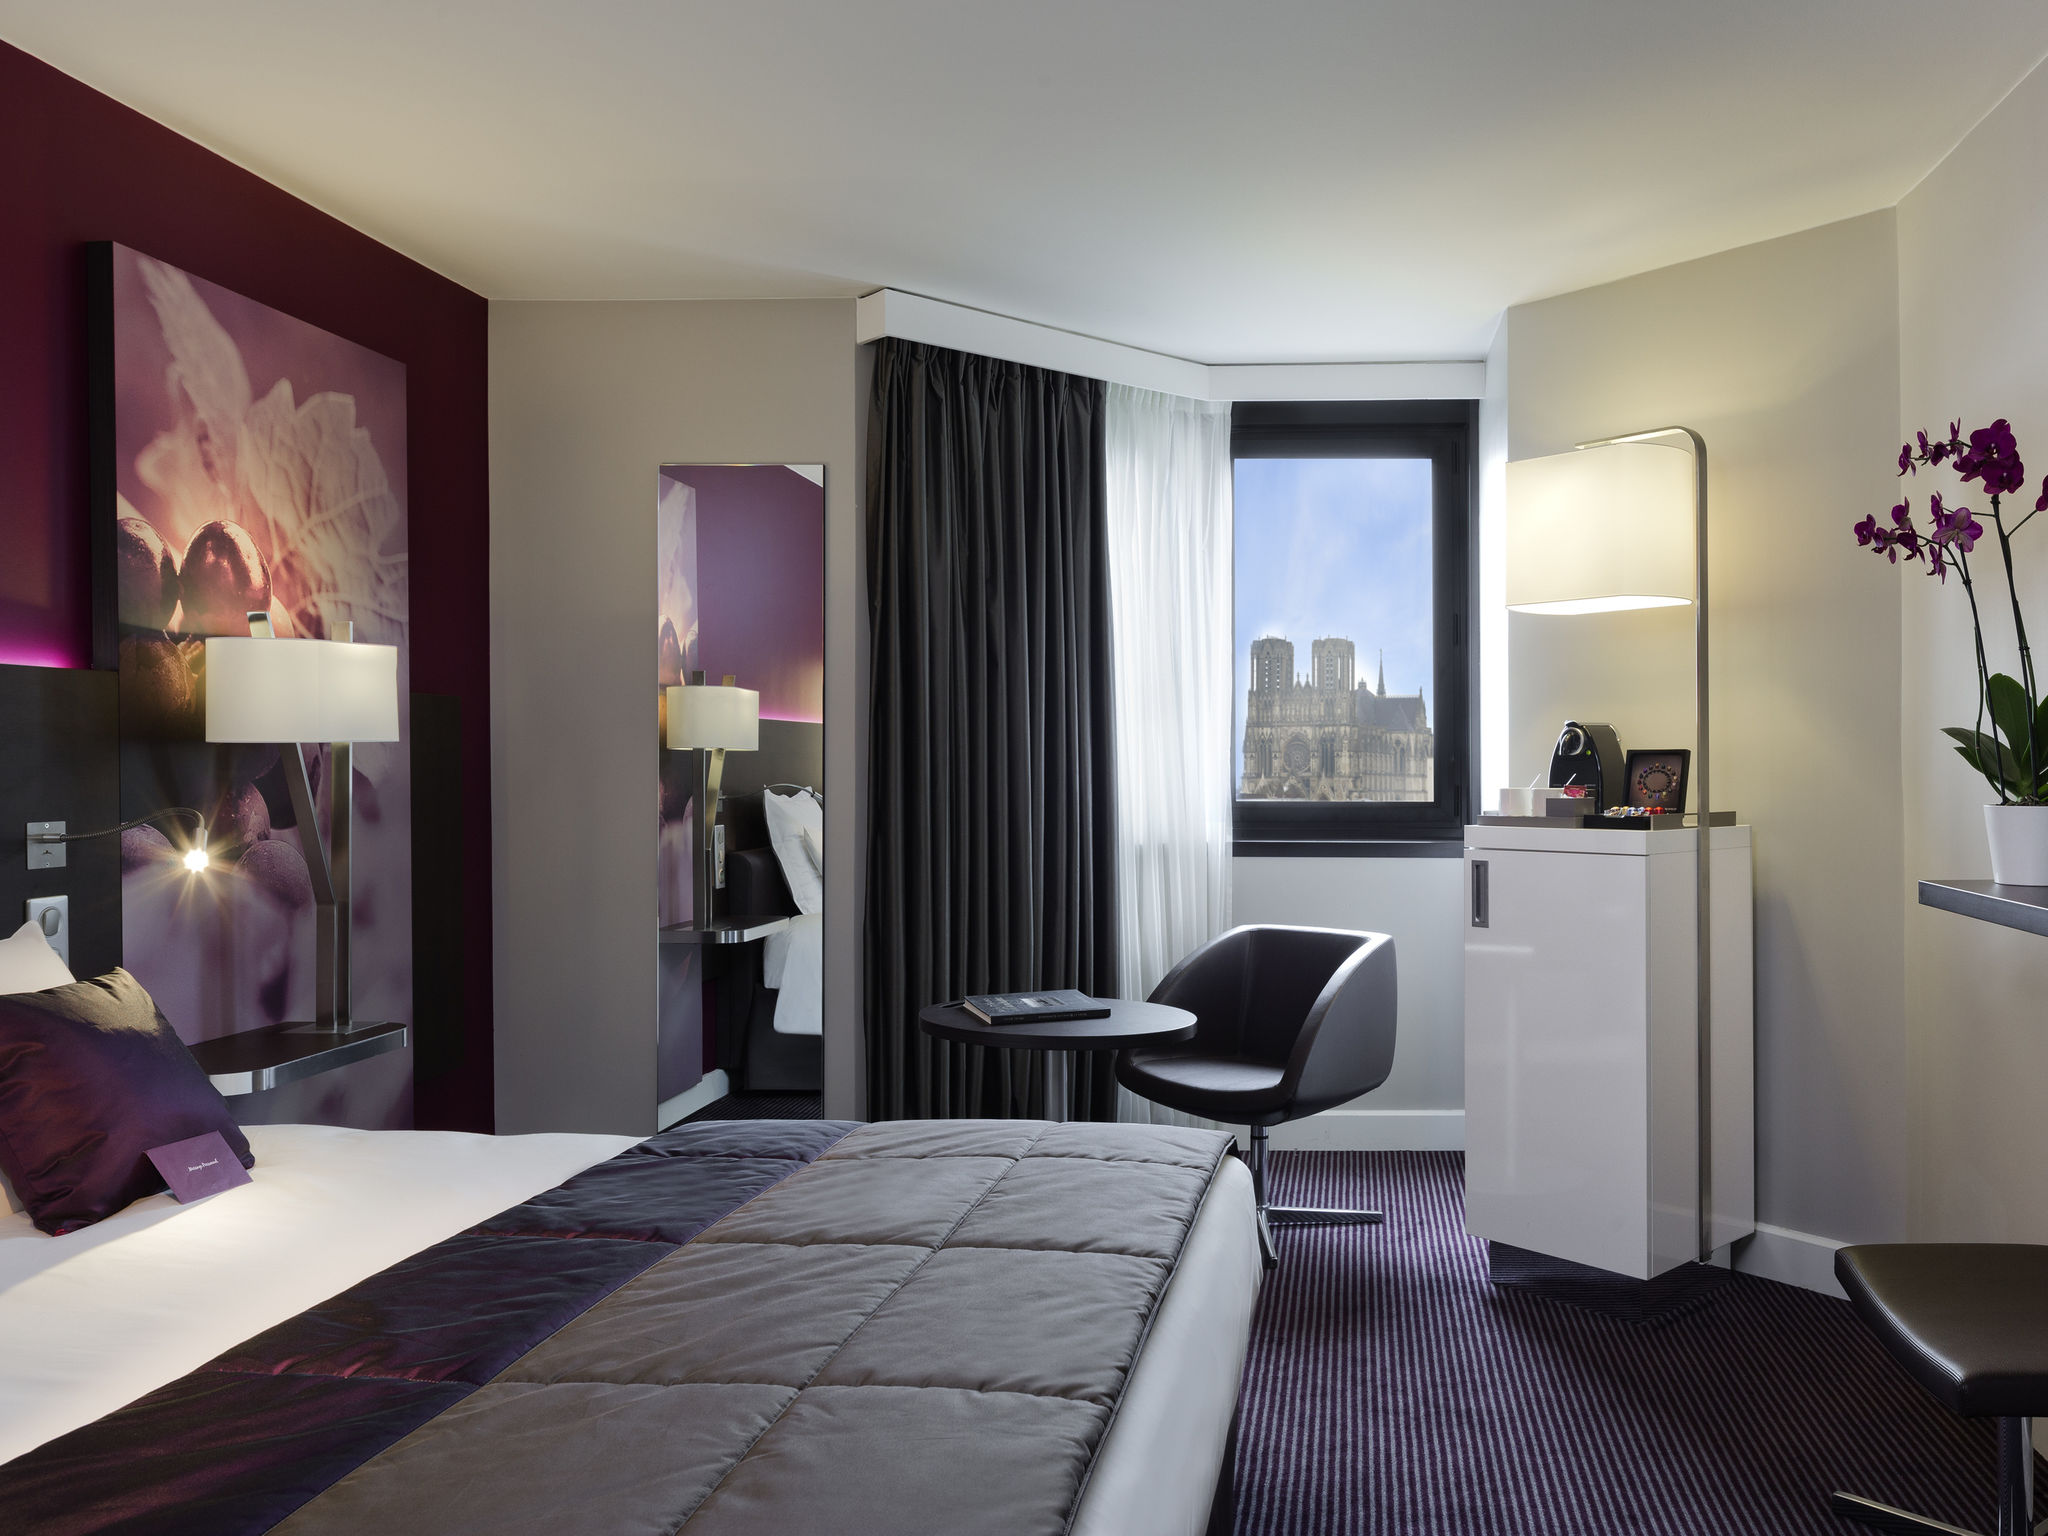 Hotel – Hotel Mercure Reims Centre Cathedrale